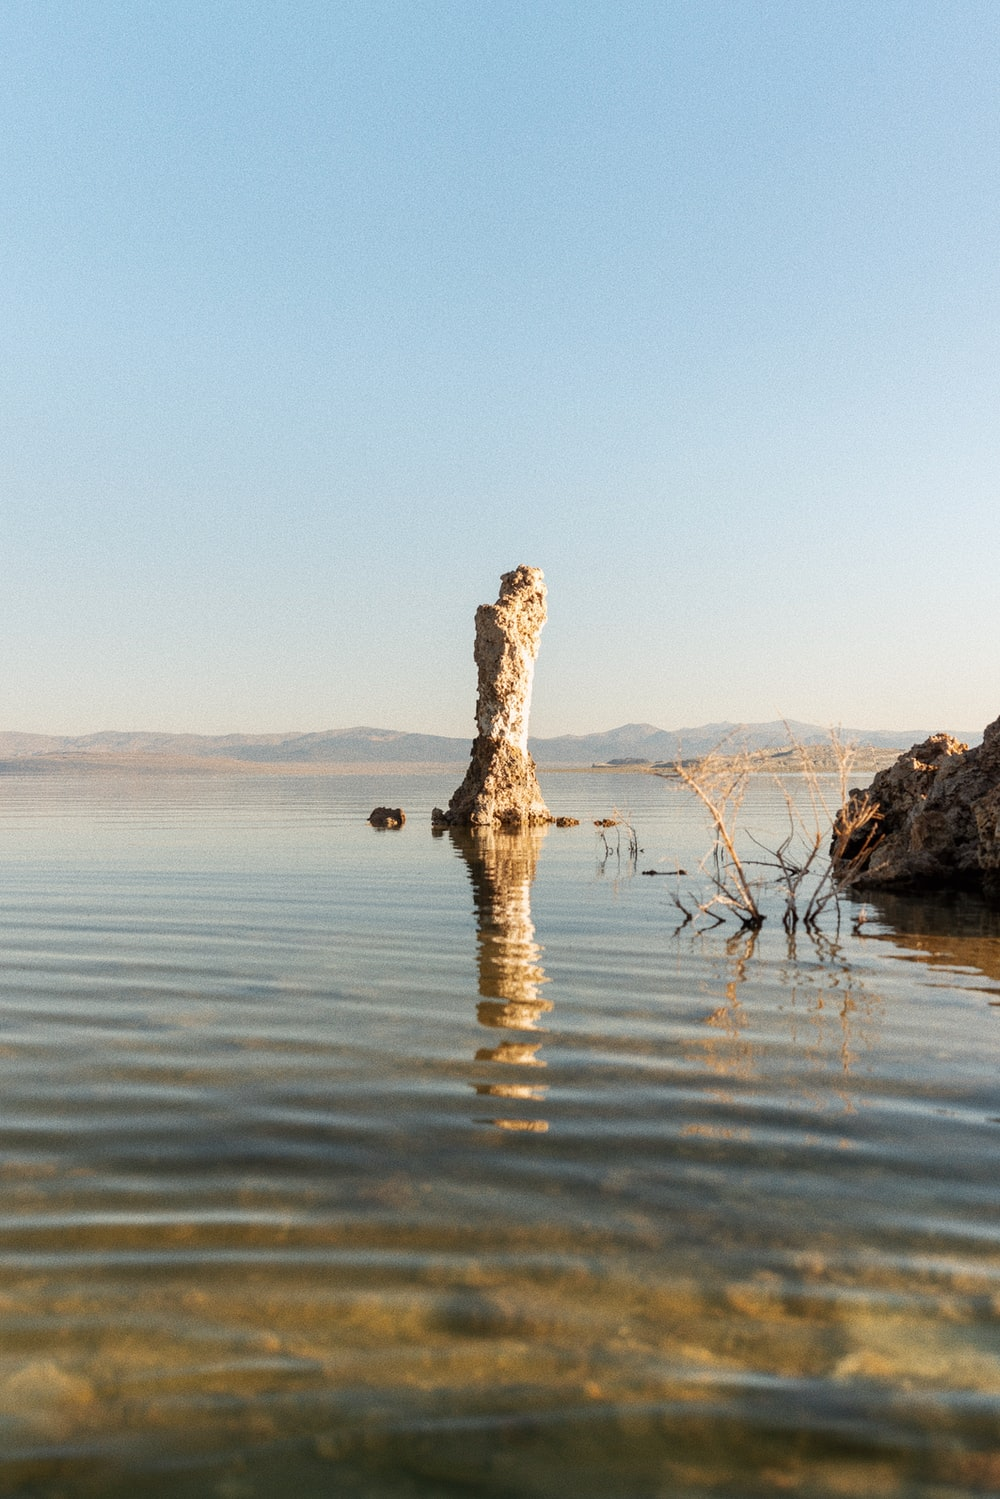 brown tree trunk on water during daytime